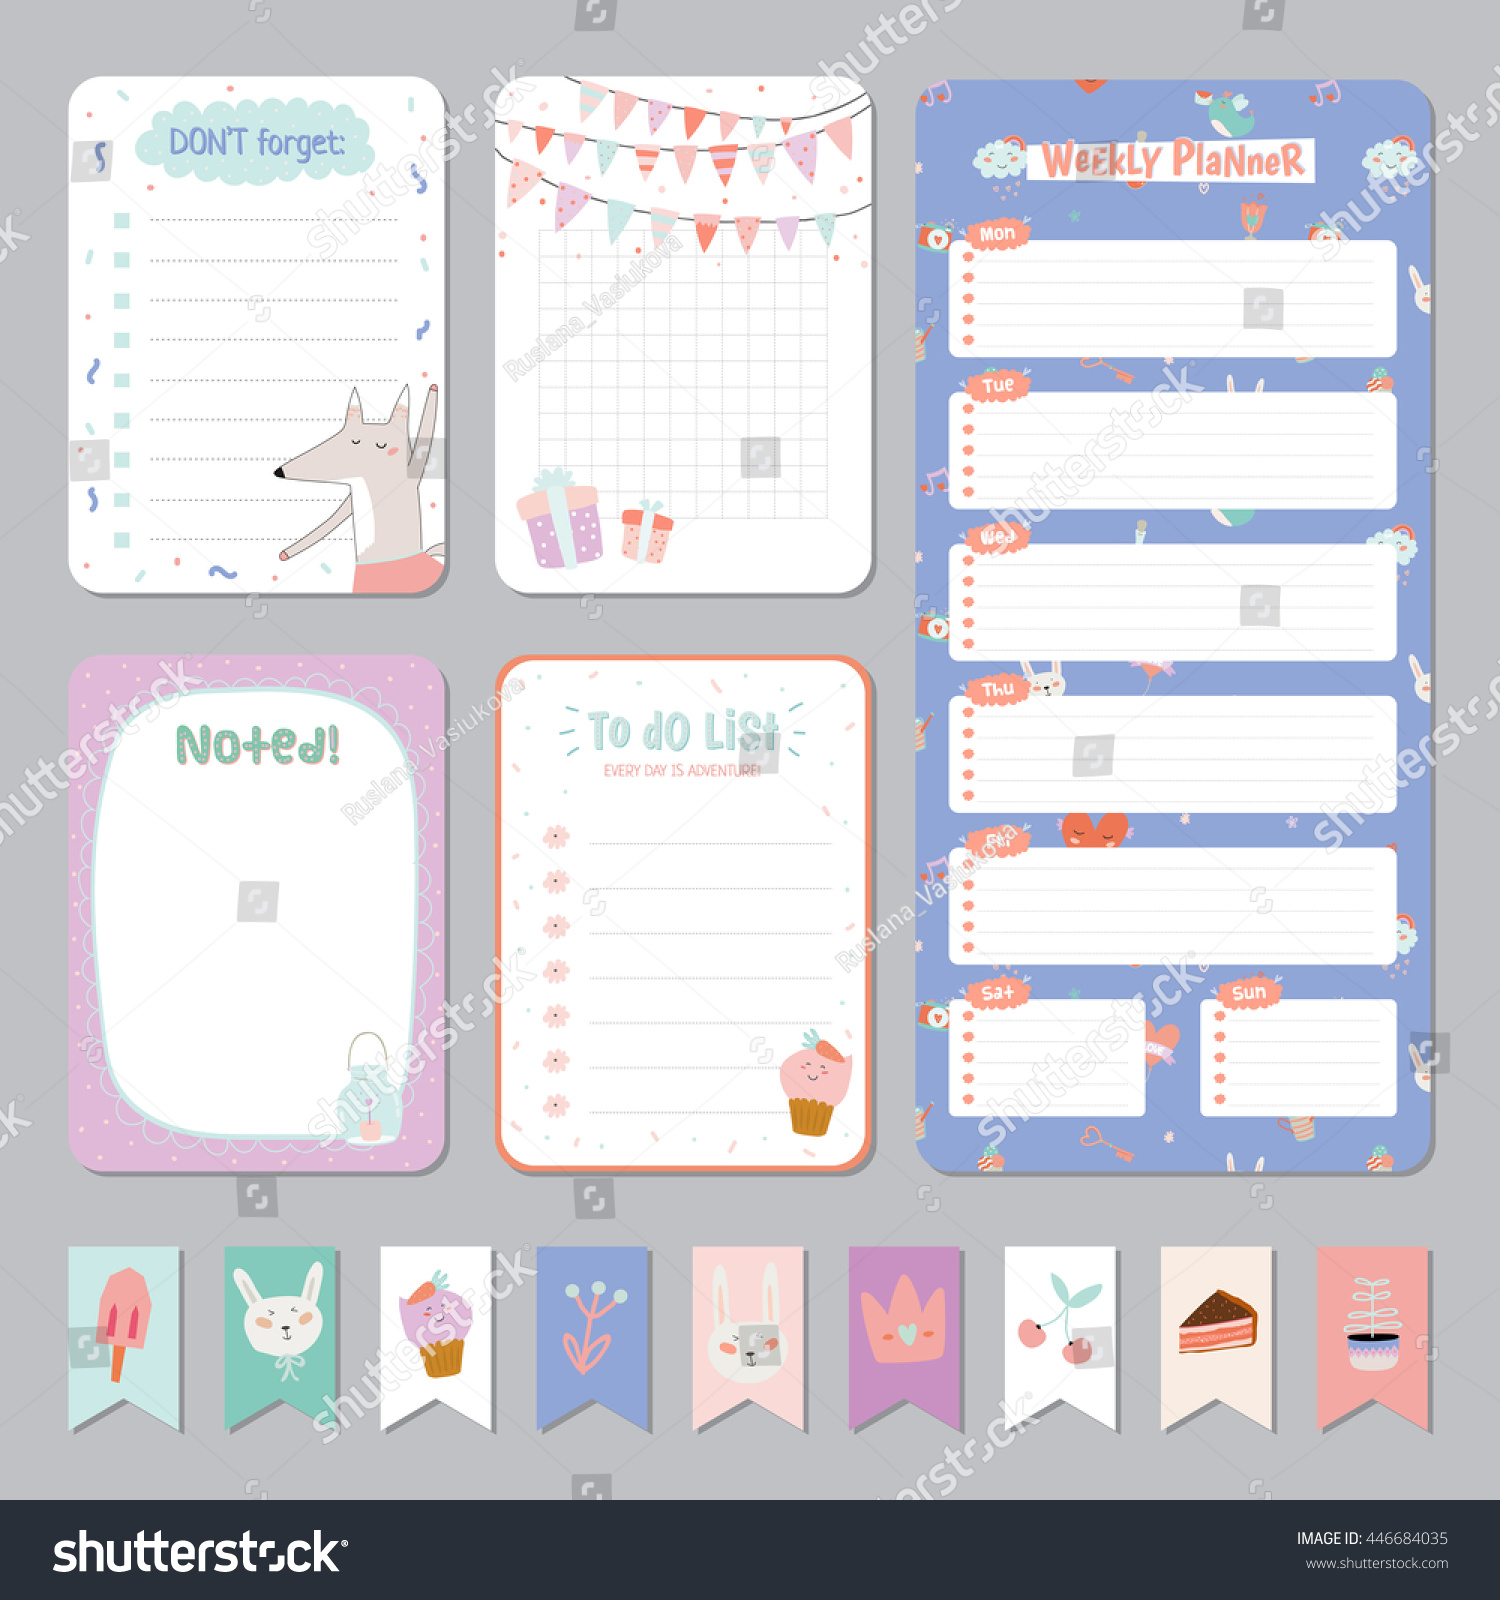 9+ Awesome Planner Stickers